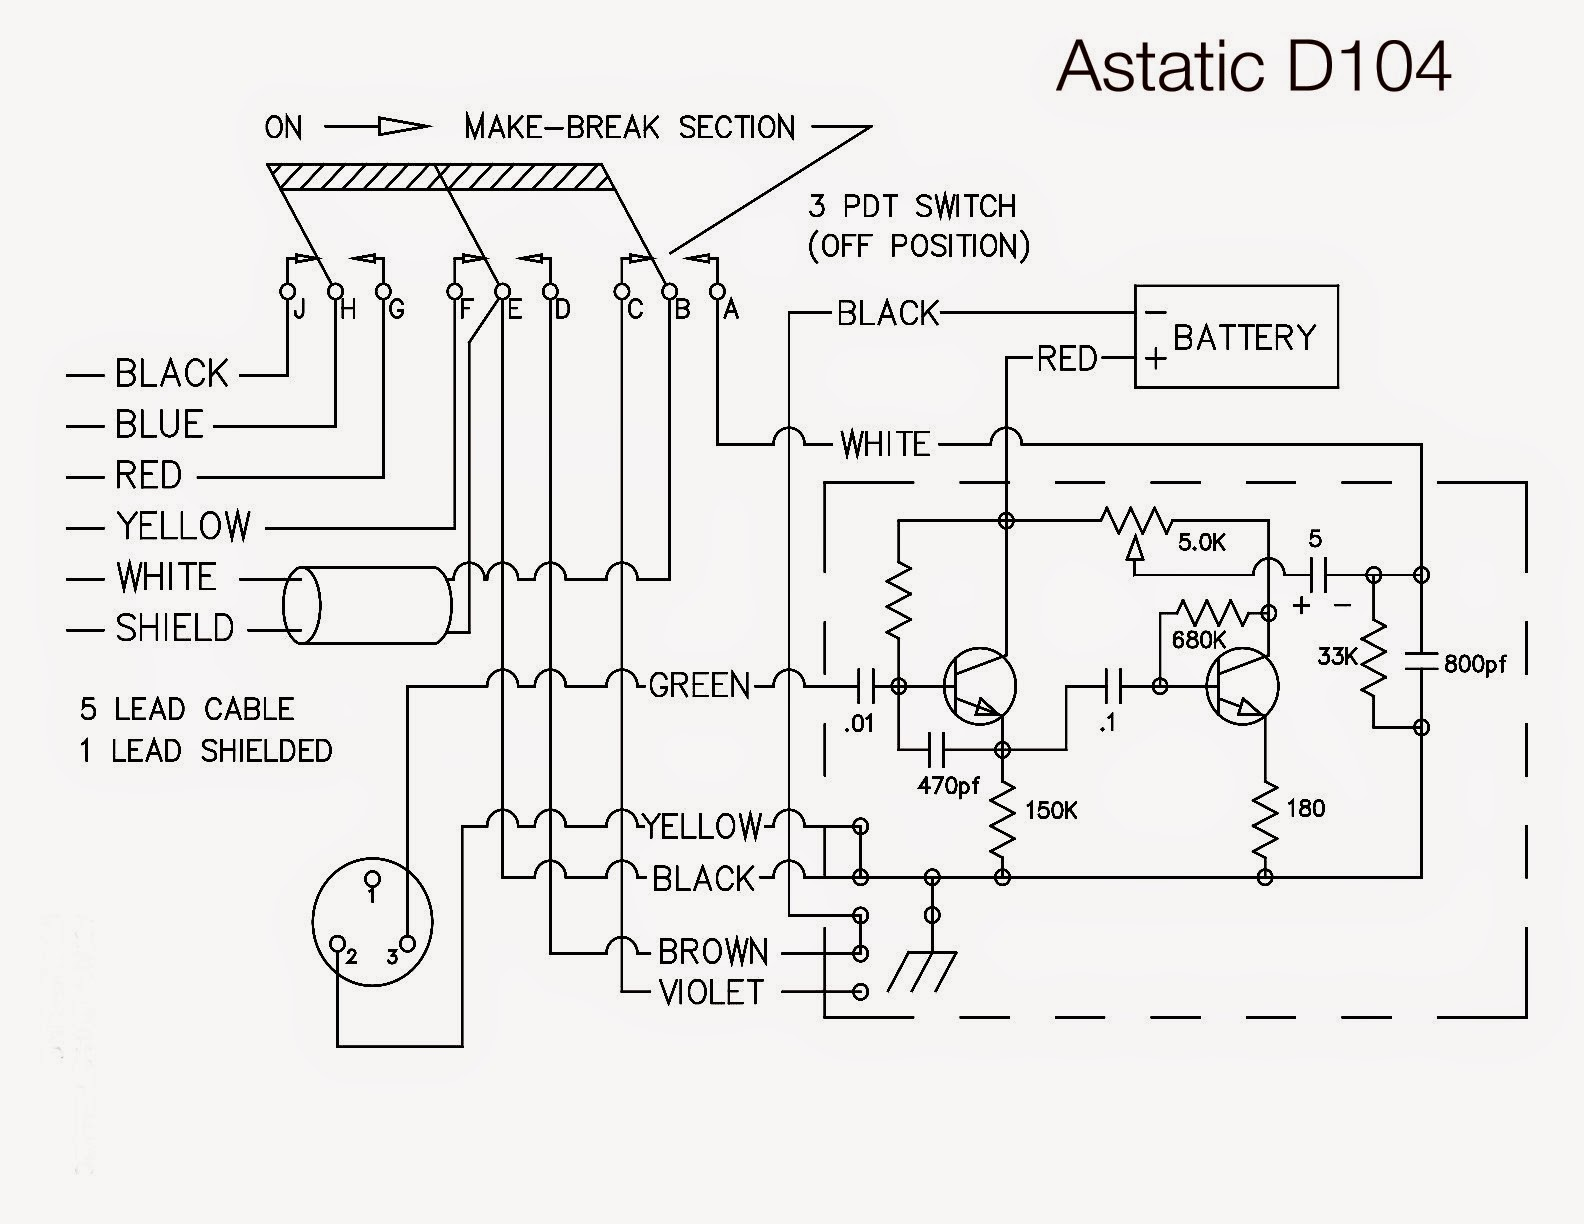 medium resolution of astatic mic wiring diagram and then astatic d 104 microphone wiring diagram in addition astatic silver eagle wiring diagram as well as astatic echo board